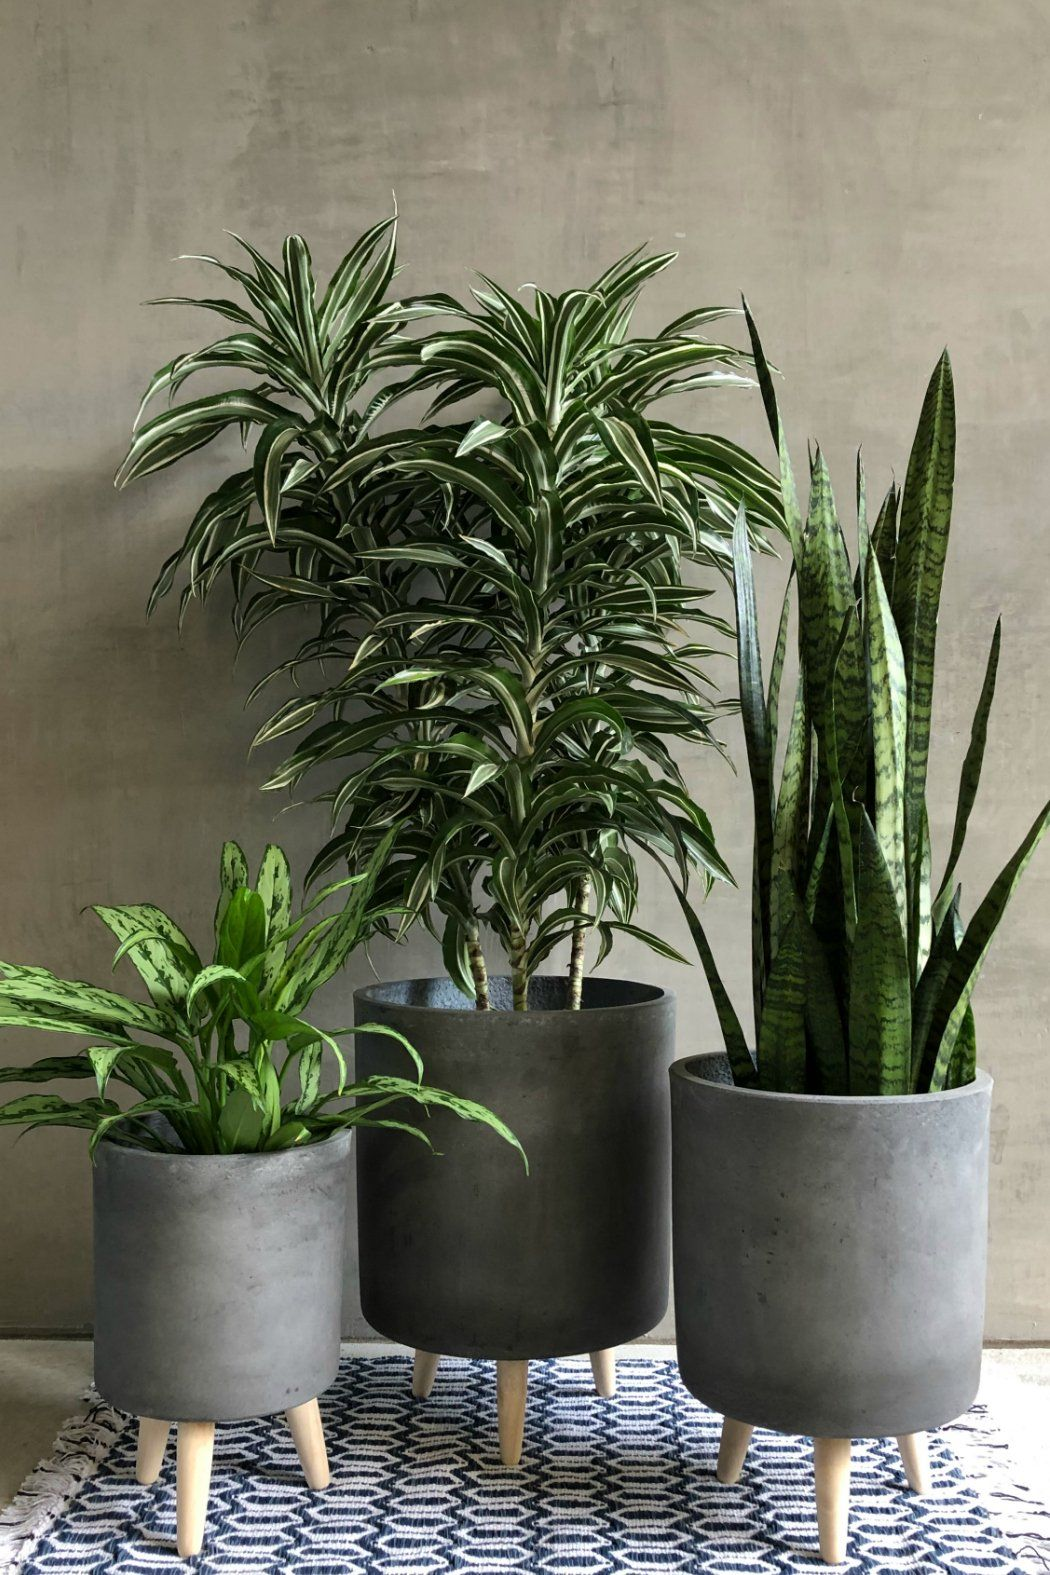 Charcoal Fiber Clay Cylinder Planter With Wood Legs Planter Pots Indoor Clay Planters Potted Plants Outdoor